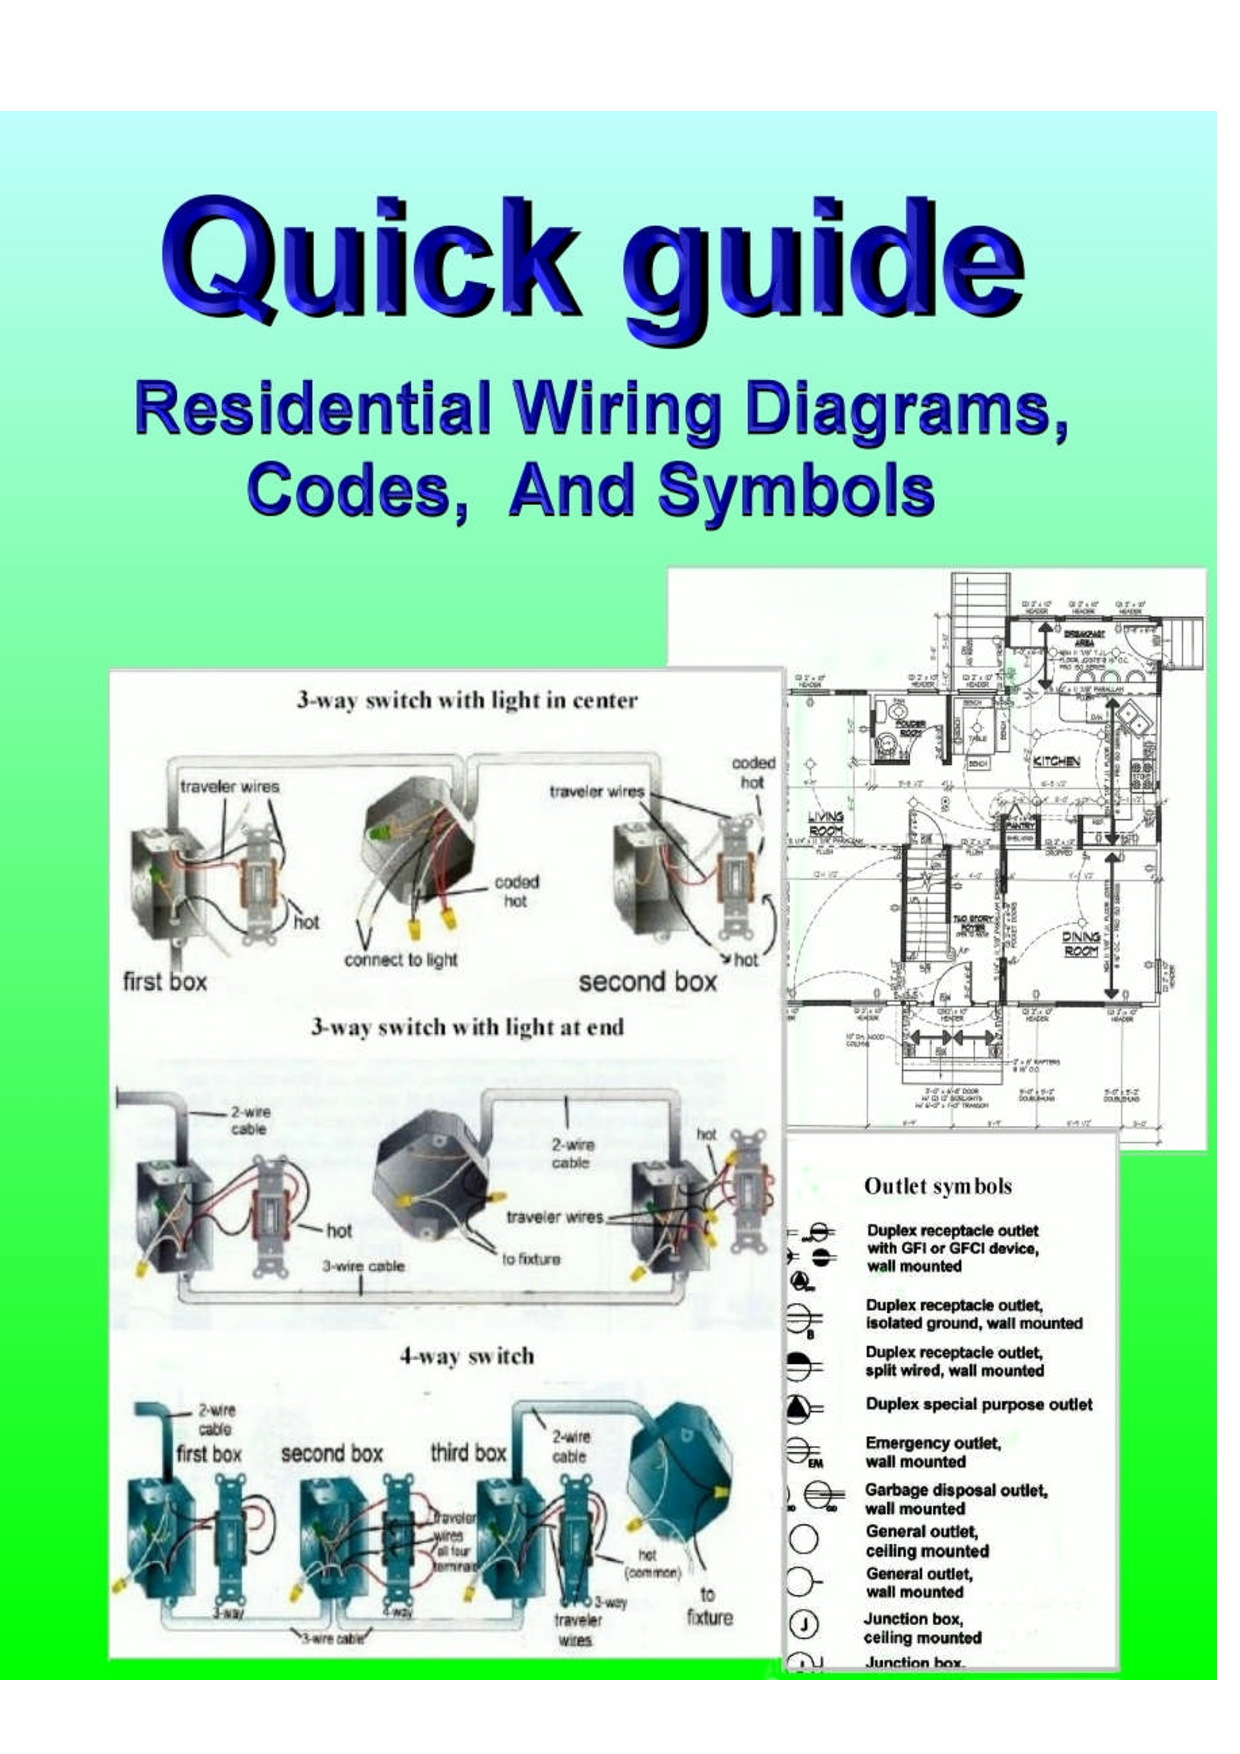 home electrical wiring diagrams pdf download legal documents 39 new home wiring guide [ 1240 x 1754 Pixel ]